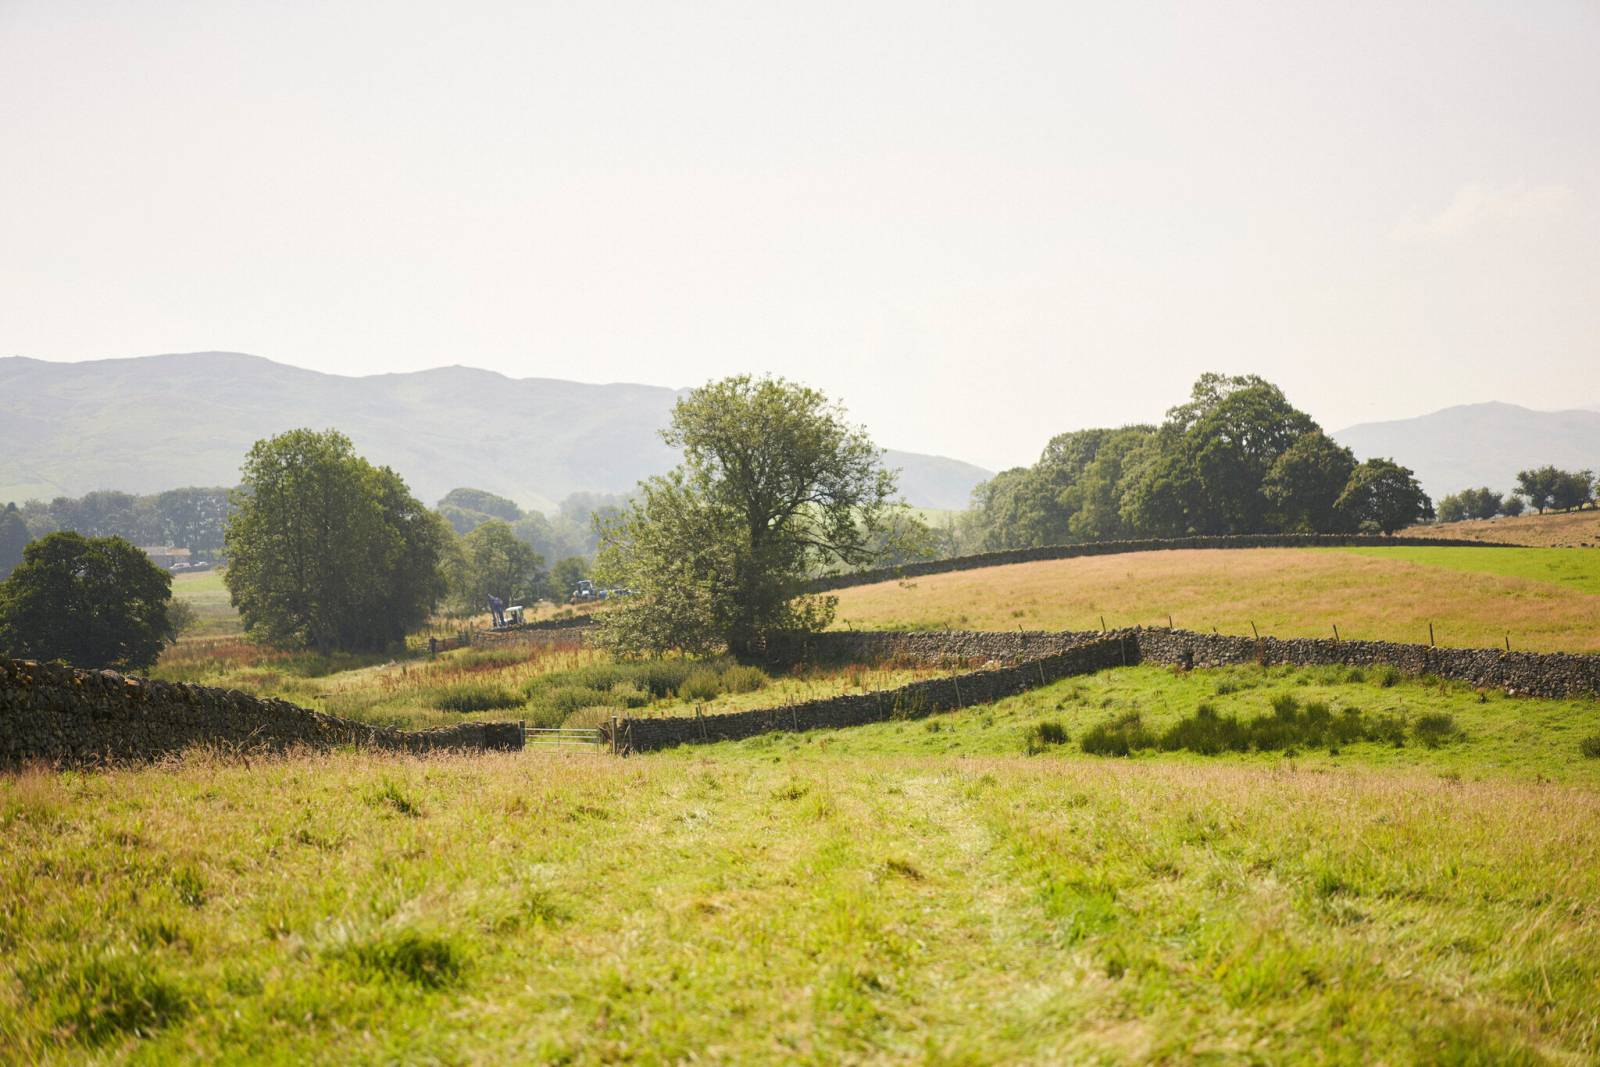 A view of James Rebanks' farm in the English countryside